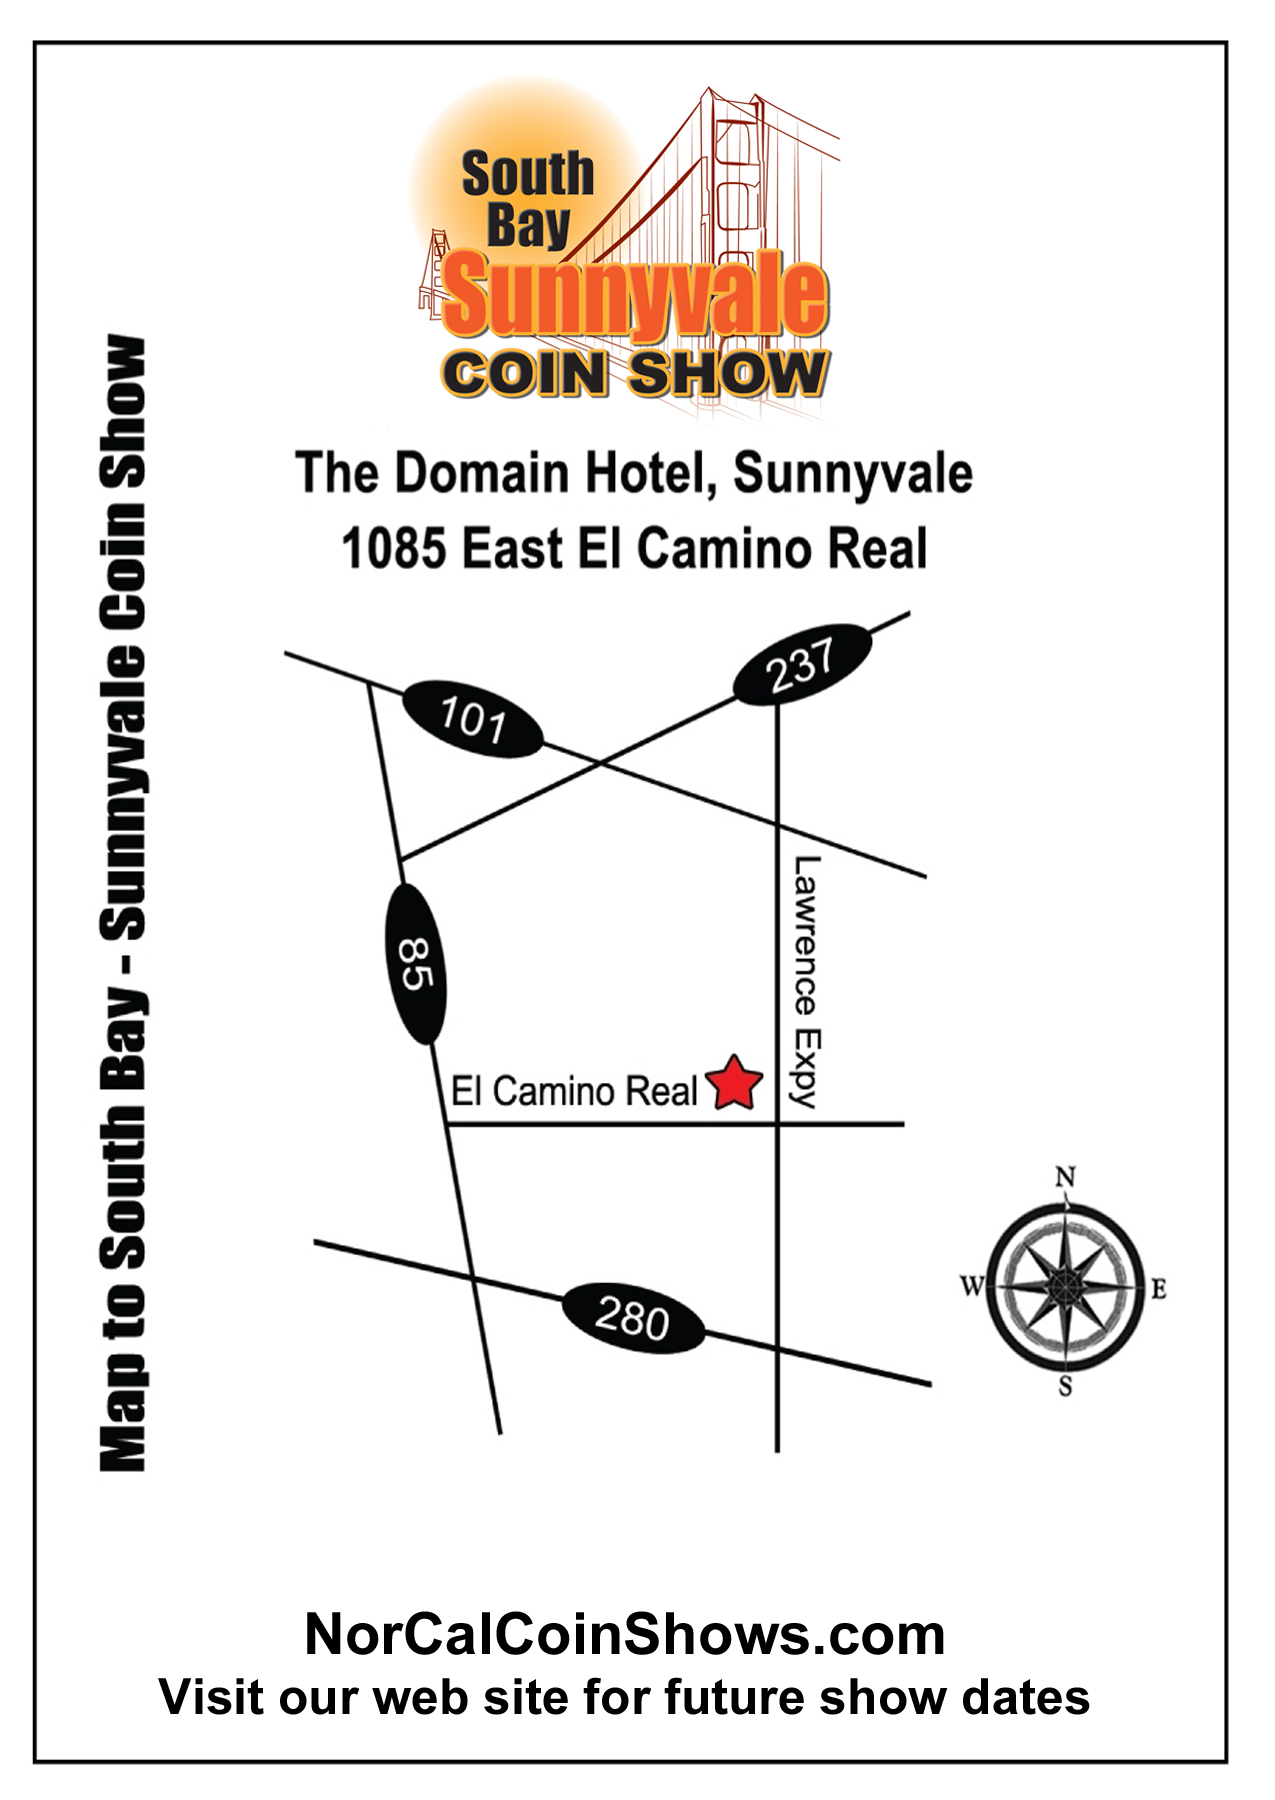 Sunnyvale_Show_flyer_reverse[1]corrected11-15